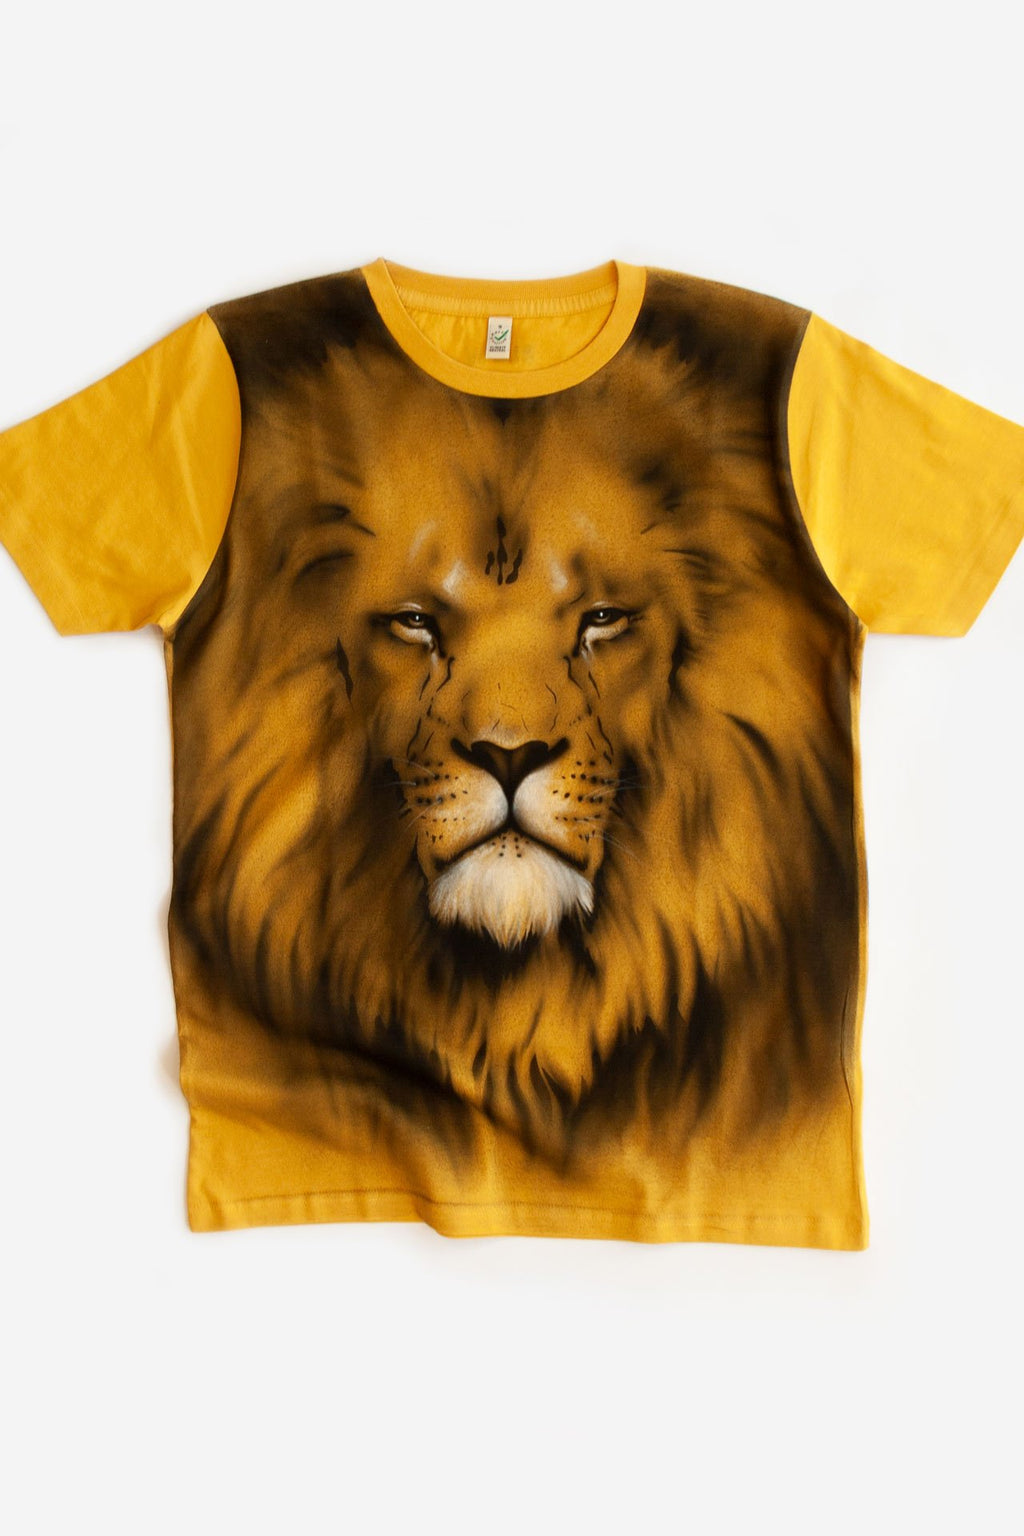 LEO - LIMITED EDITION unisex premium short sleeve t-shirt